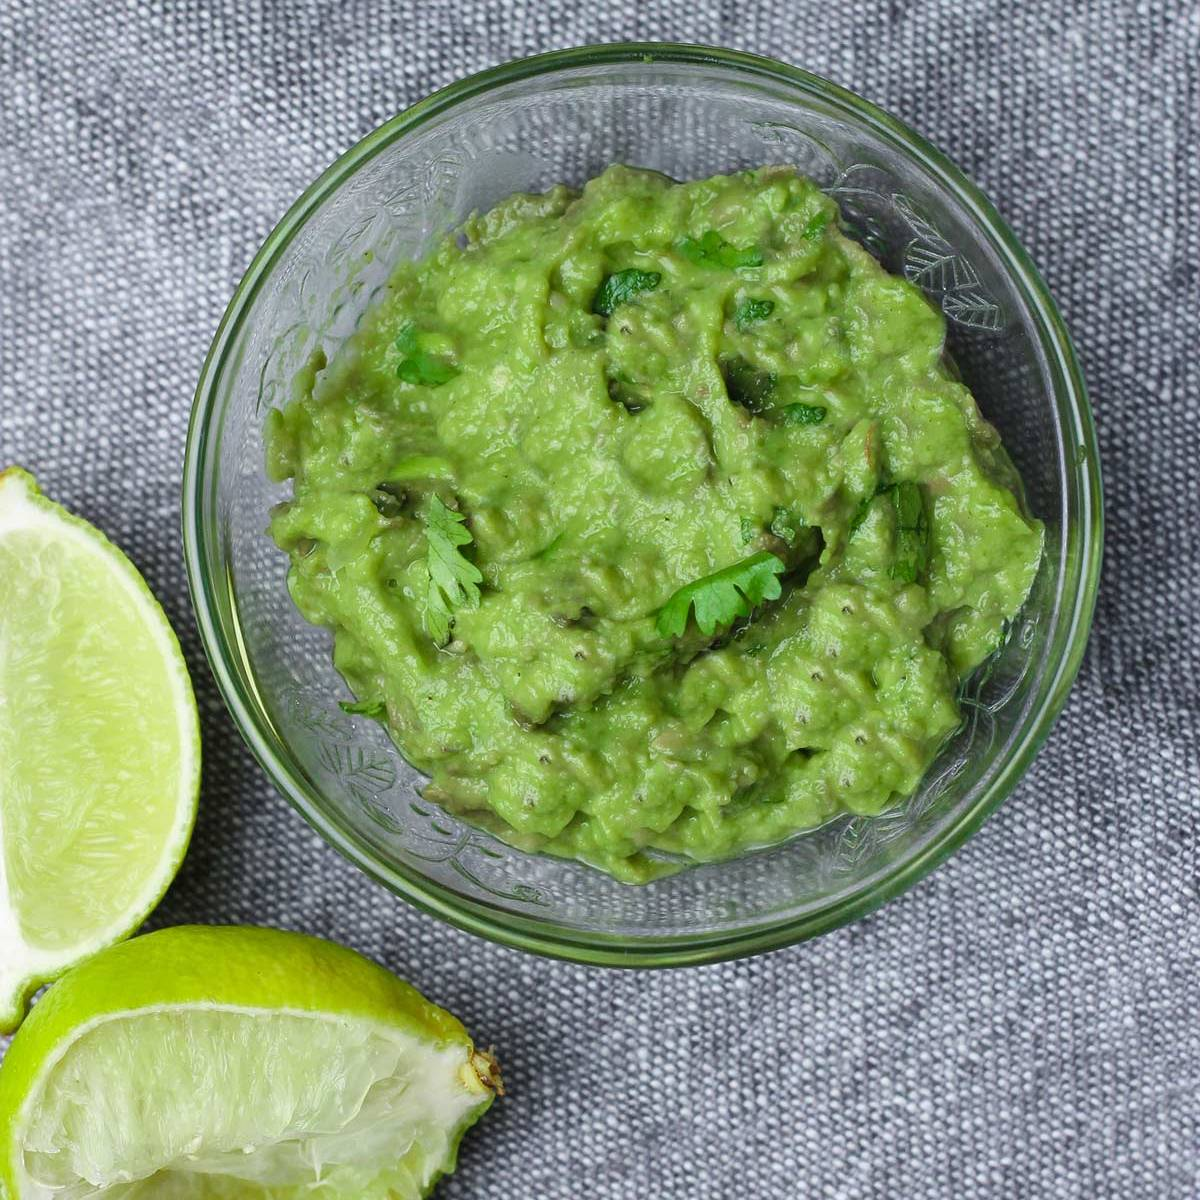 small bowl of guacamole with squeezed limes